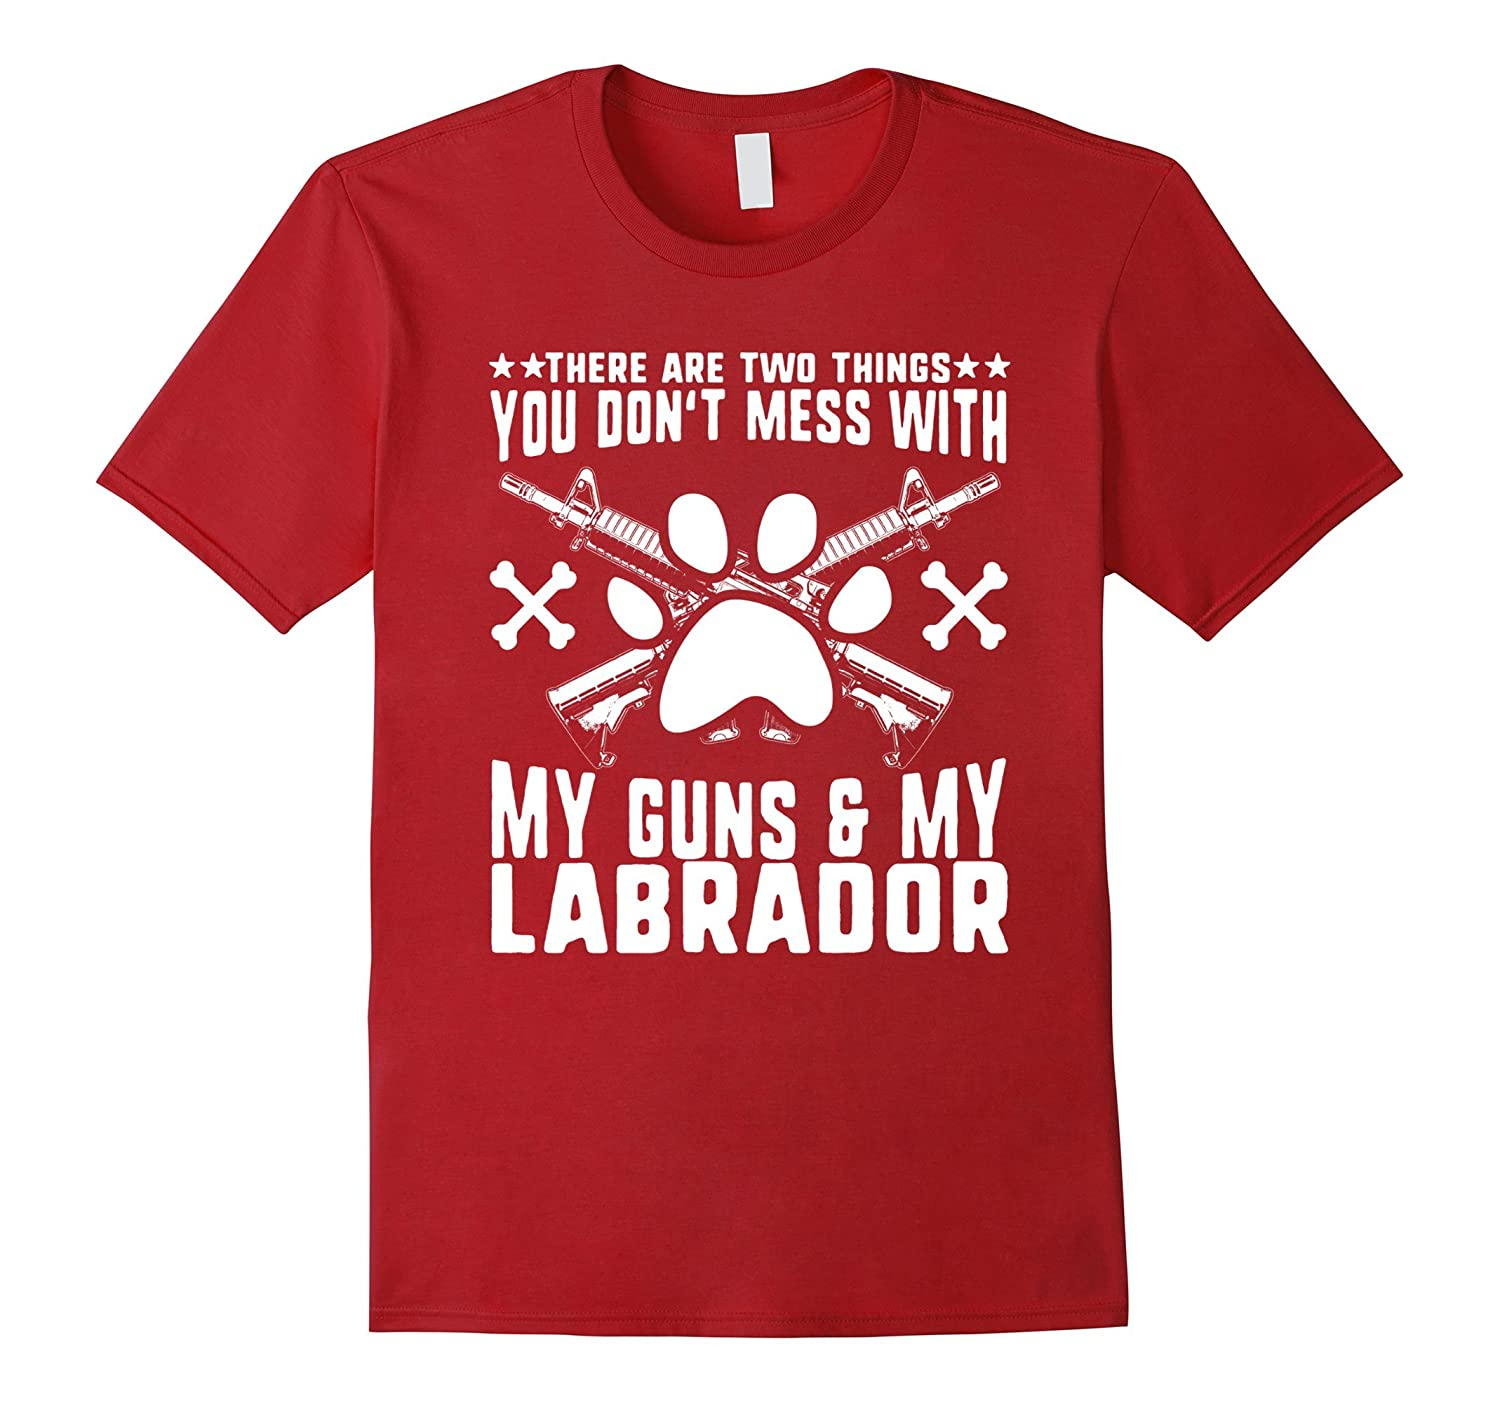 Don't Mess With My Guns Or Labrador T-Shirt  Cool Dog Tee